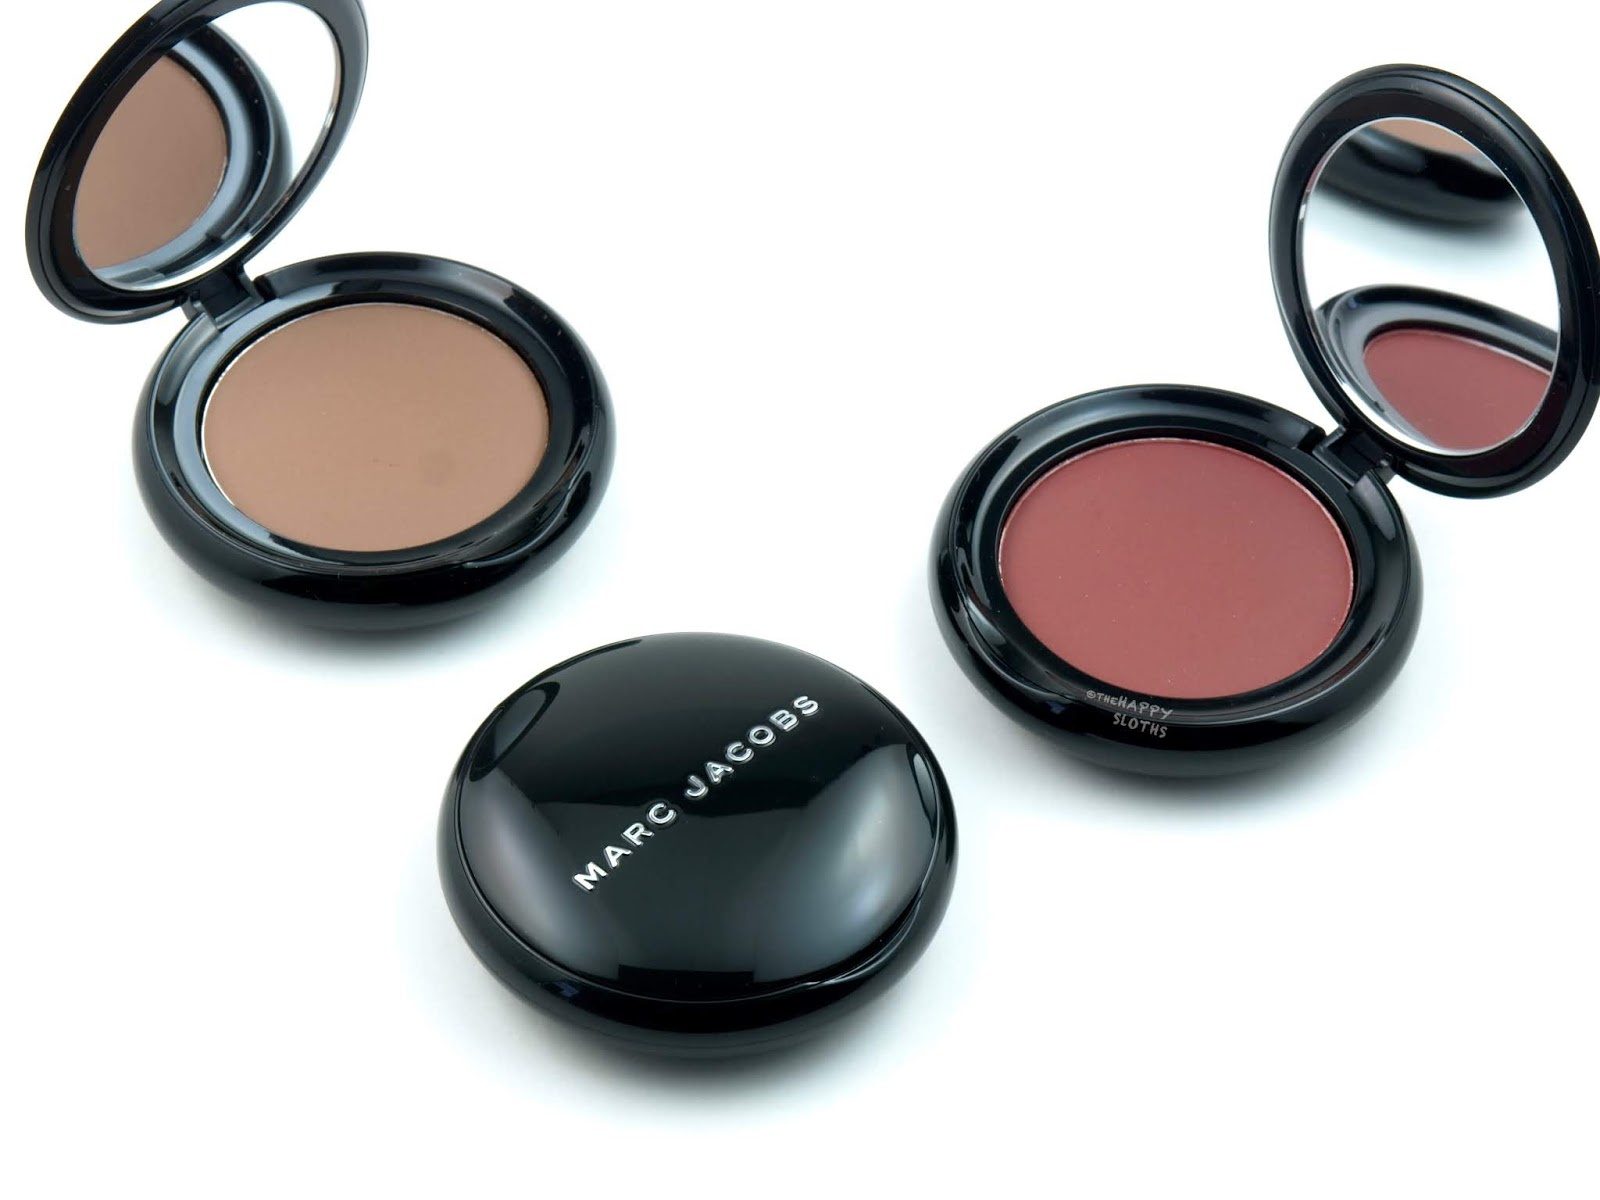 Marc Jacobs | O!mega Gel Powder Eyeshadow: Review and Swatches